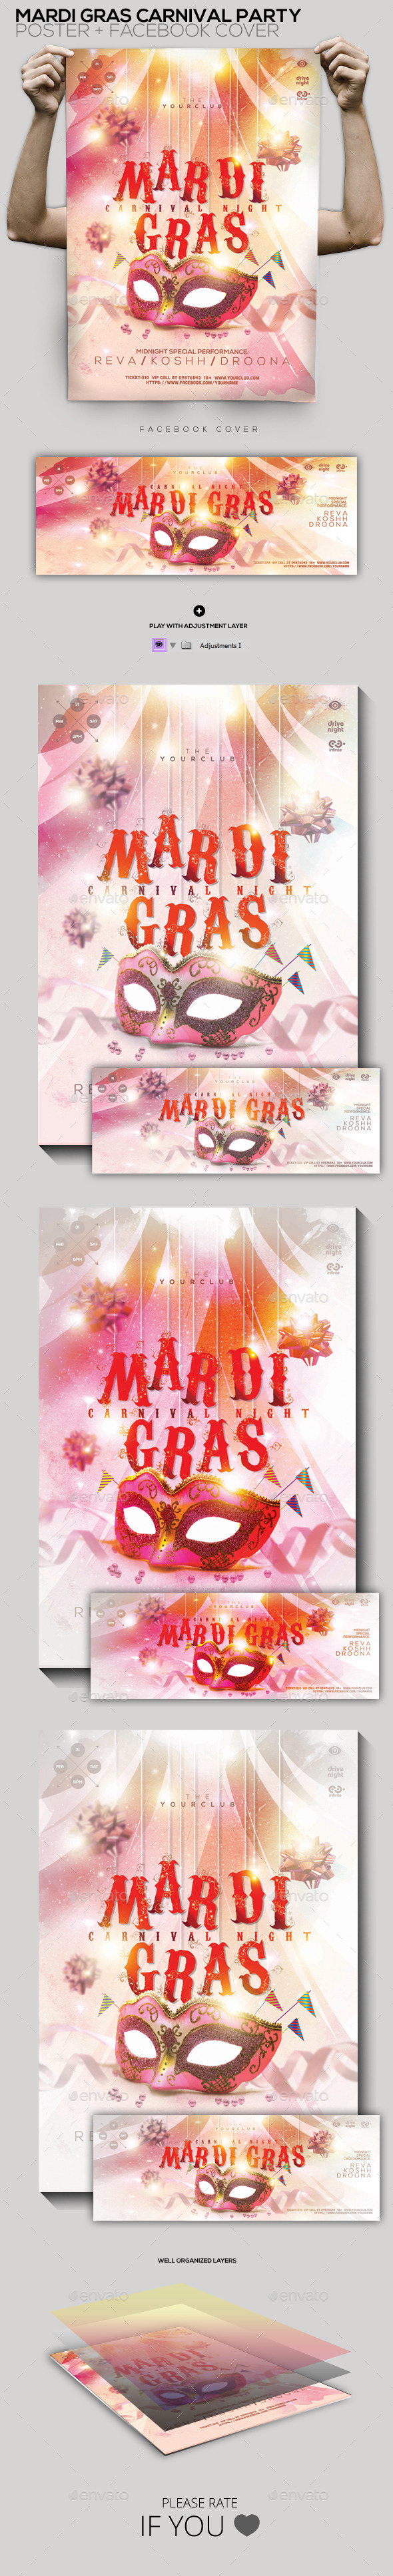 GraphicRiver Mardi Gras Carnival Party Flyer Poster Facebook 9994318